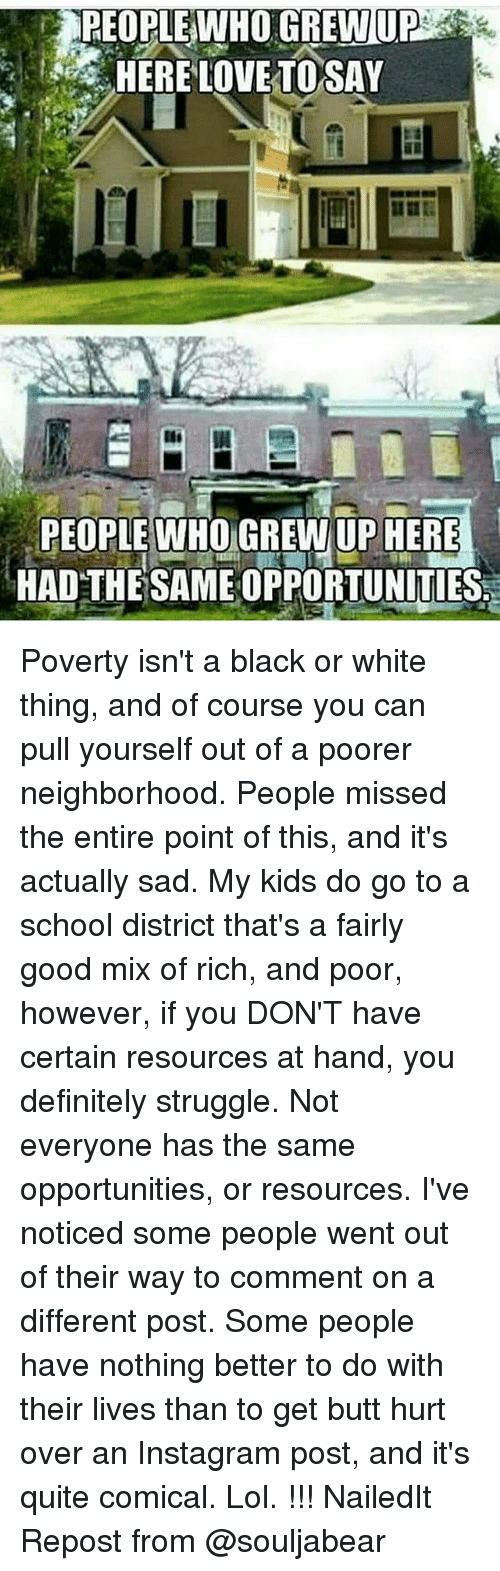 Butt, Definitely, and Instagram: PEOPLE WHO GREW UP  PEOPLE WHO UP HERE  HAD THE SAMENOPPORTUNITIES Poverty isn't a black or white thing, and of course you can pull yourself out of a poorer neighborhood. People missed the entire point of this, and it's actually sad. My kids do go to a school district that's a fairly good mix of rich, and poor, however, if you DON'T have certain resources at hand, you definitely struggle. Not everyone has the same opportunities, or resources. I've noticed some people went out of their way to comment on a different post. Some people have nothing better to do with their lives than to get butt hurt over an Instagram post, and it's quite comical. Lol. !!! NailedIt Repost from @souljabear